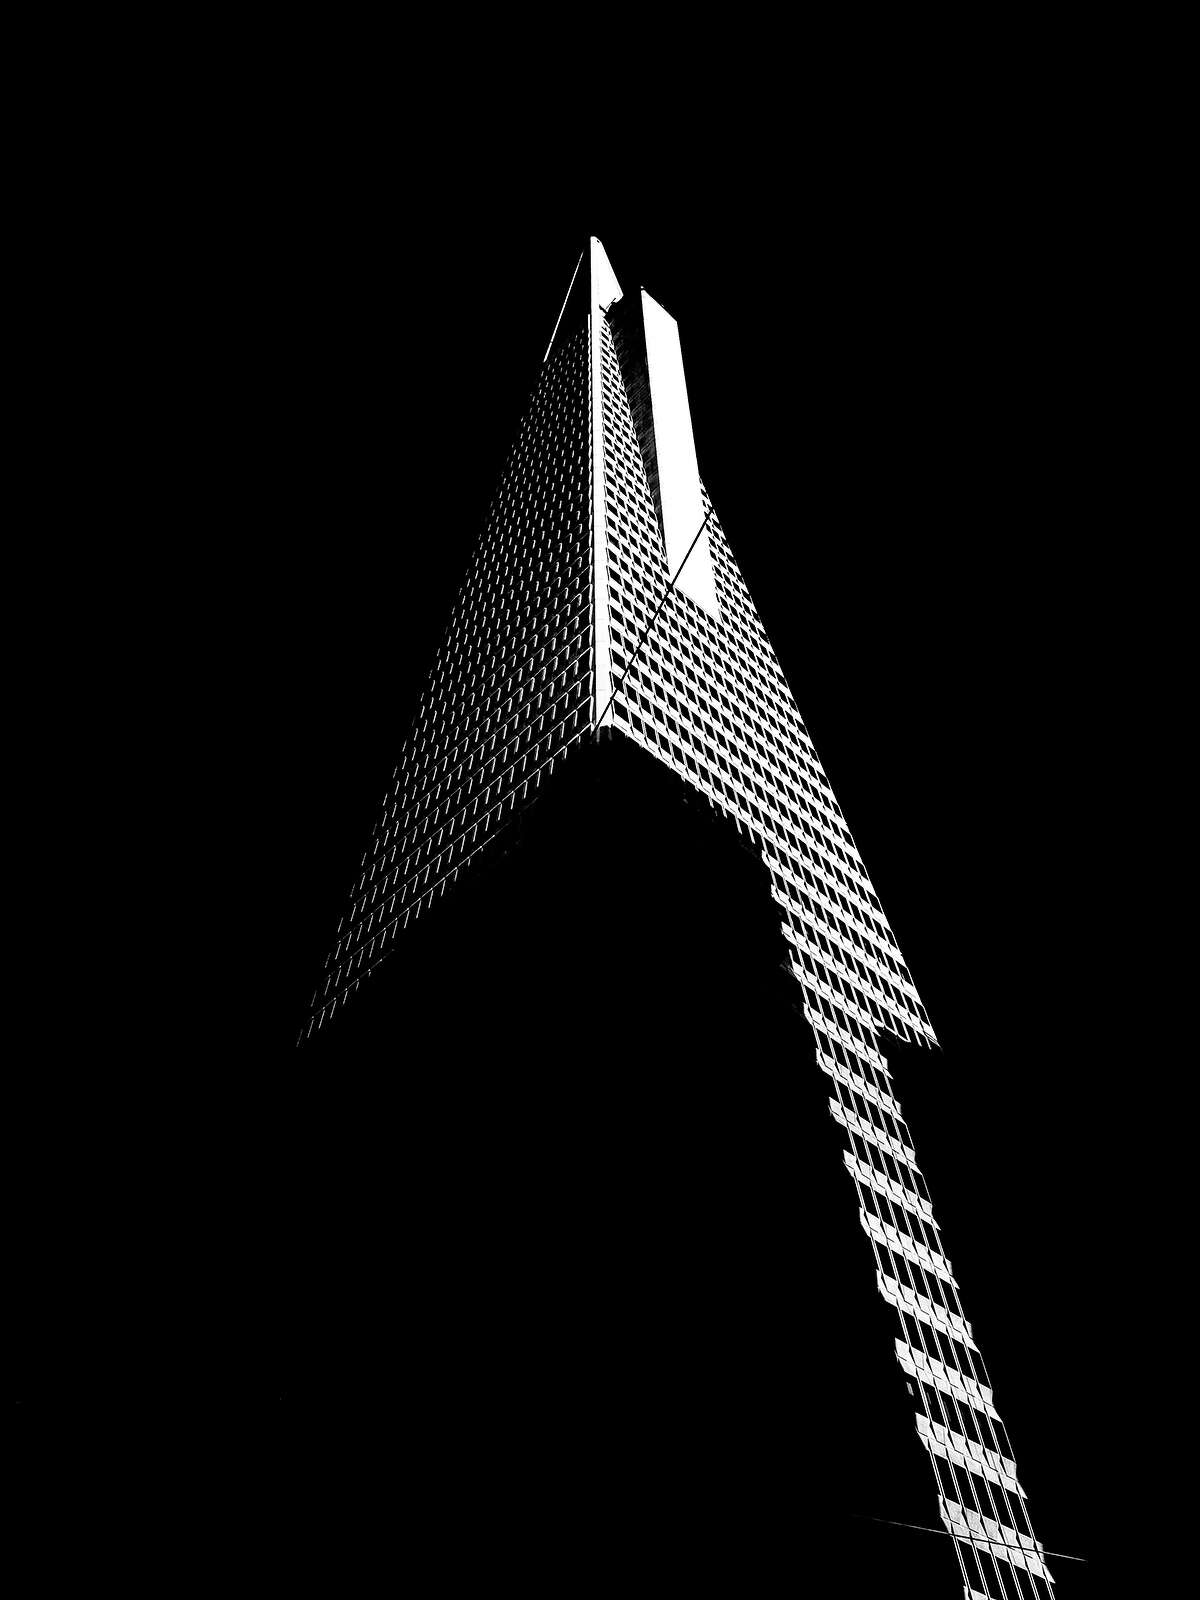 Burton Rast is working on a photograpy project on his Instagram page exploring the shapes of San Francisco.